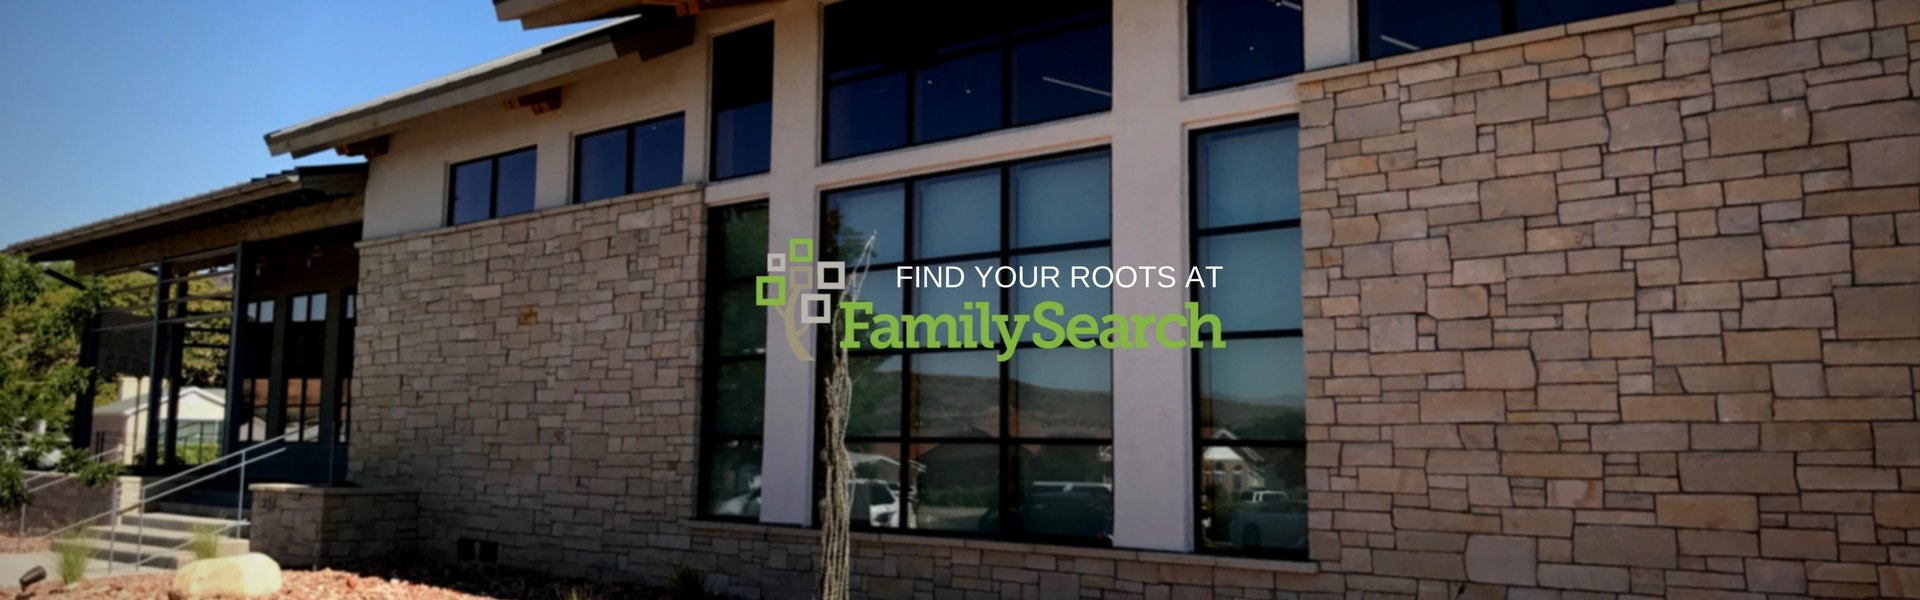 Find Your Roots at the Family Search Discovery Center